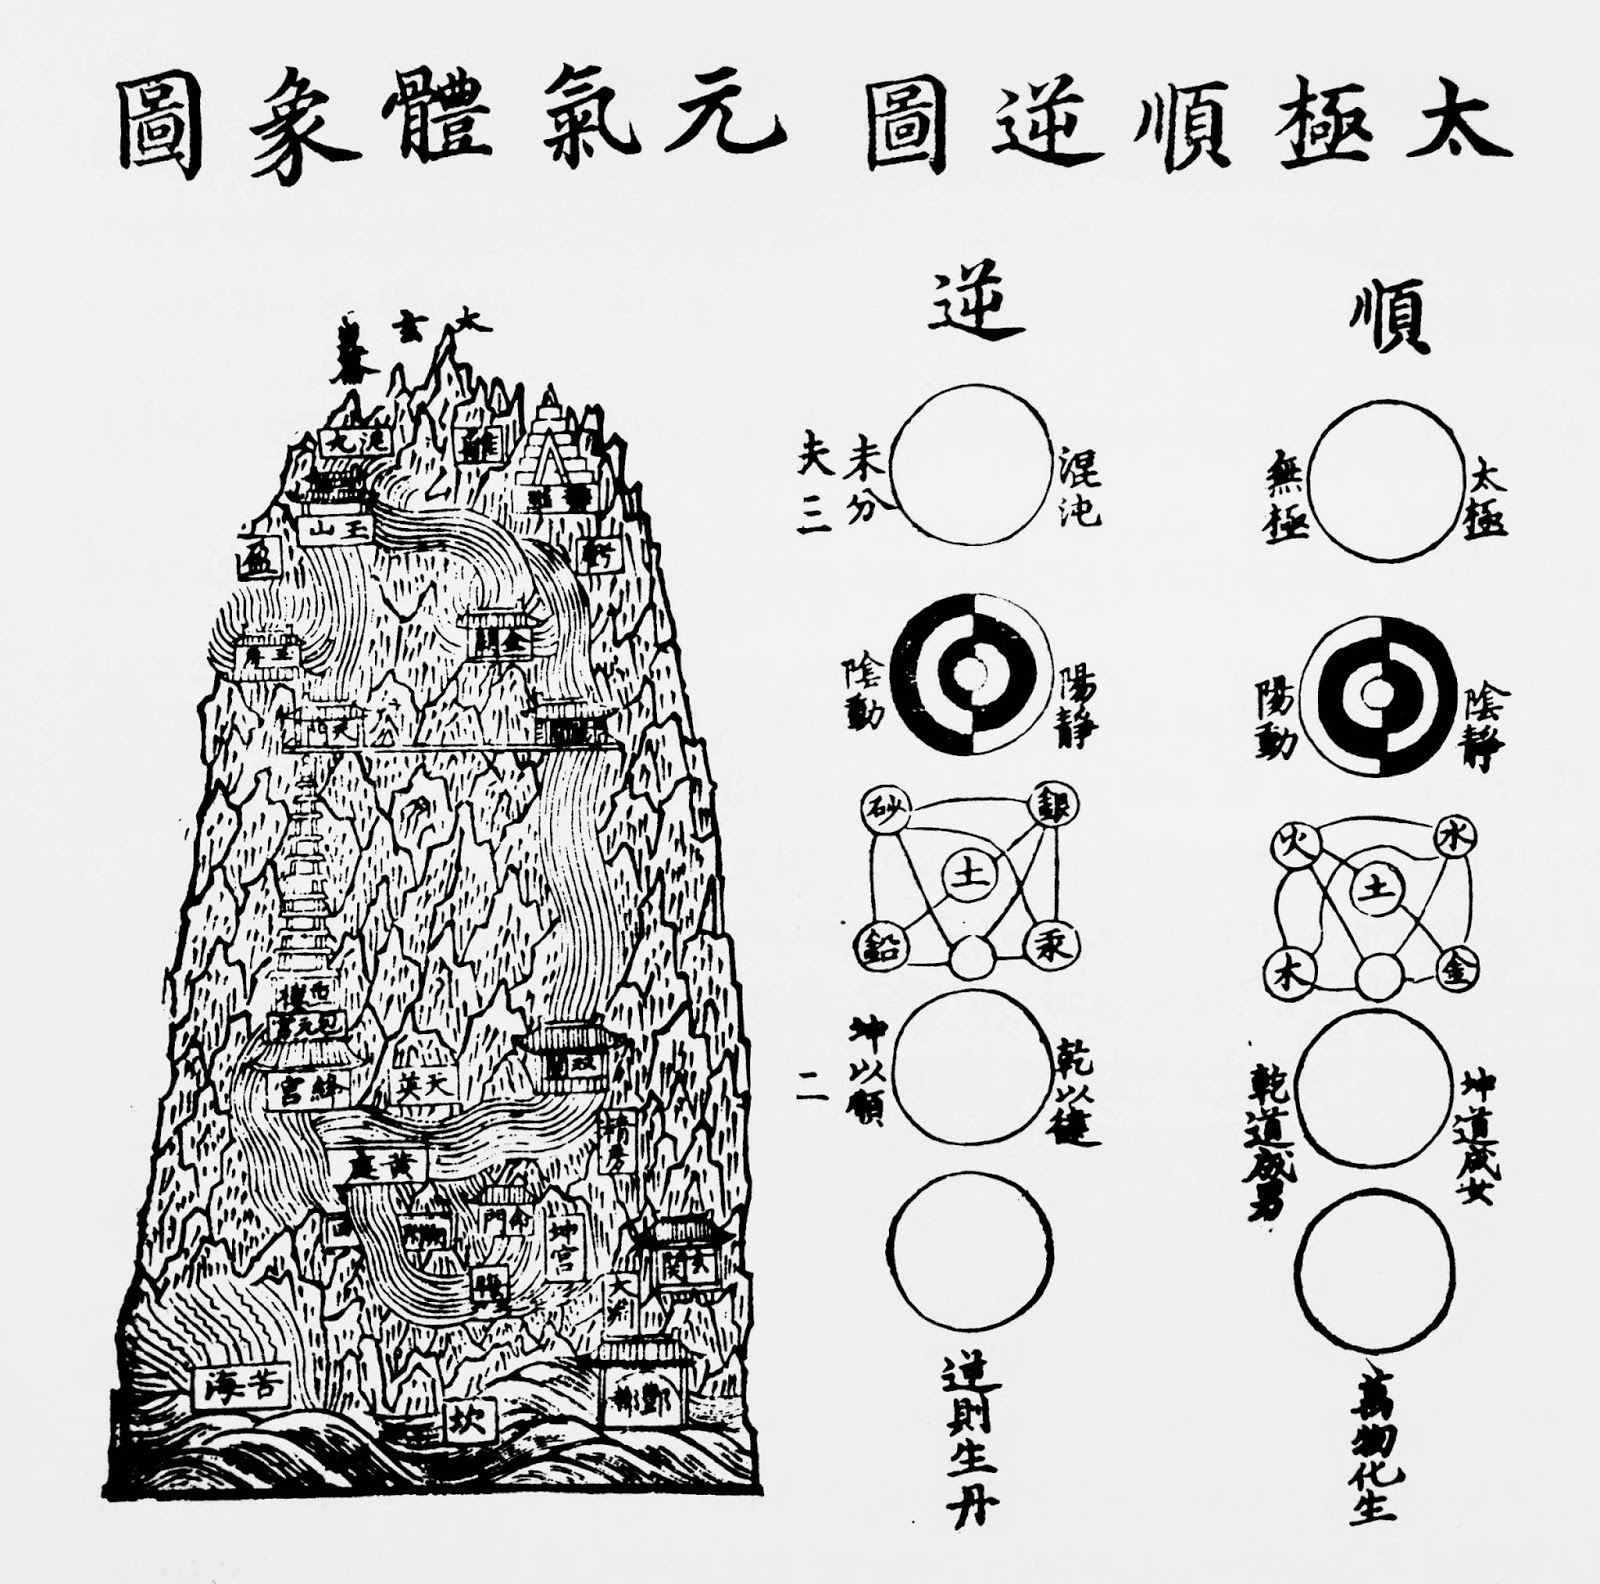 Taolainen perinne early literary sources of daoist internal alchemy daoism and buddhism since their systems borrowed from wide array of chinese conceptions baldrian hussein 2008 764 pregadio skar 2000 481482 biocorpaavc Images